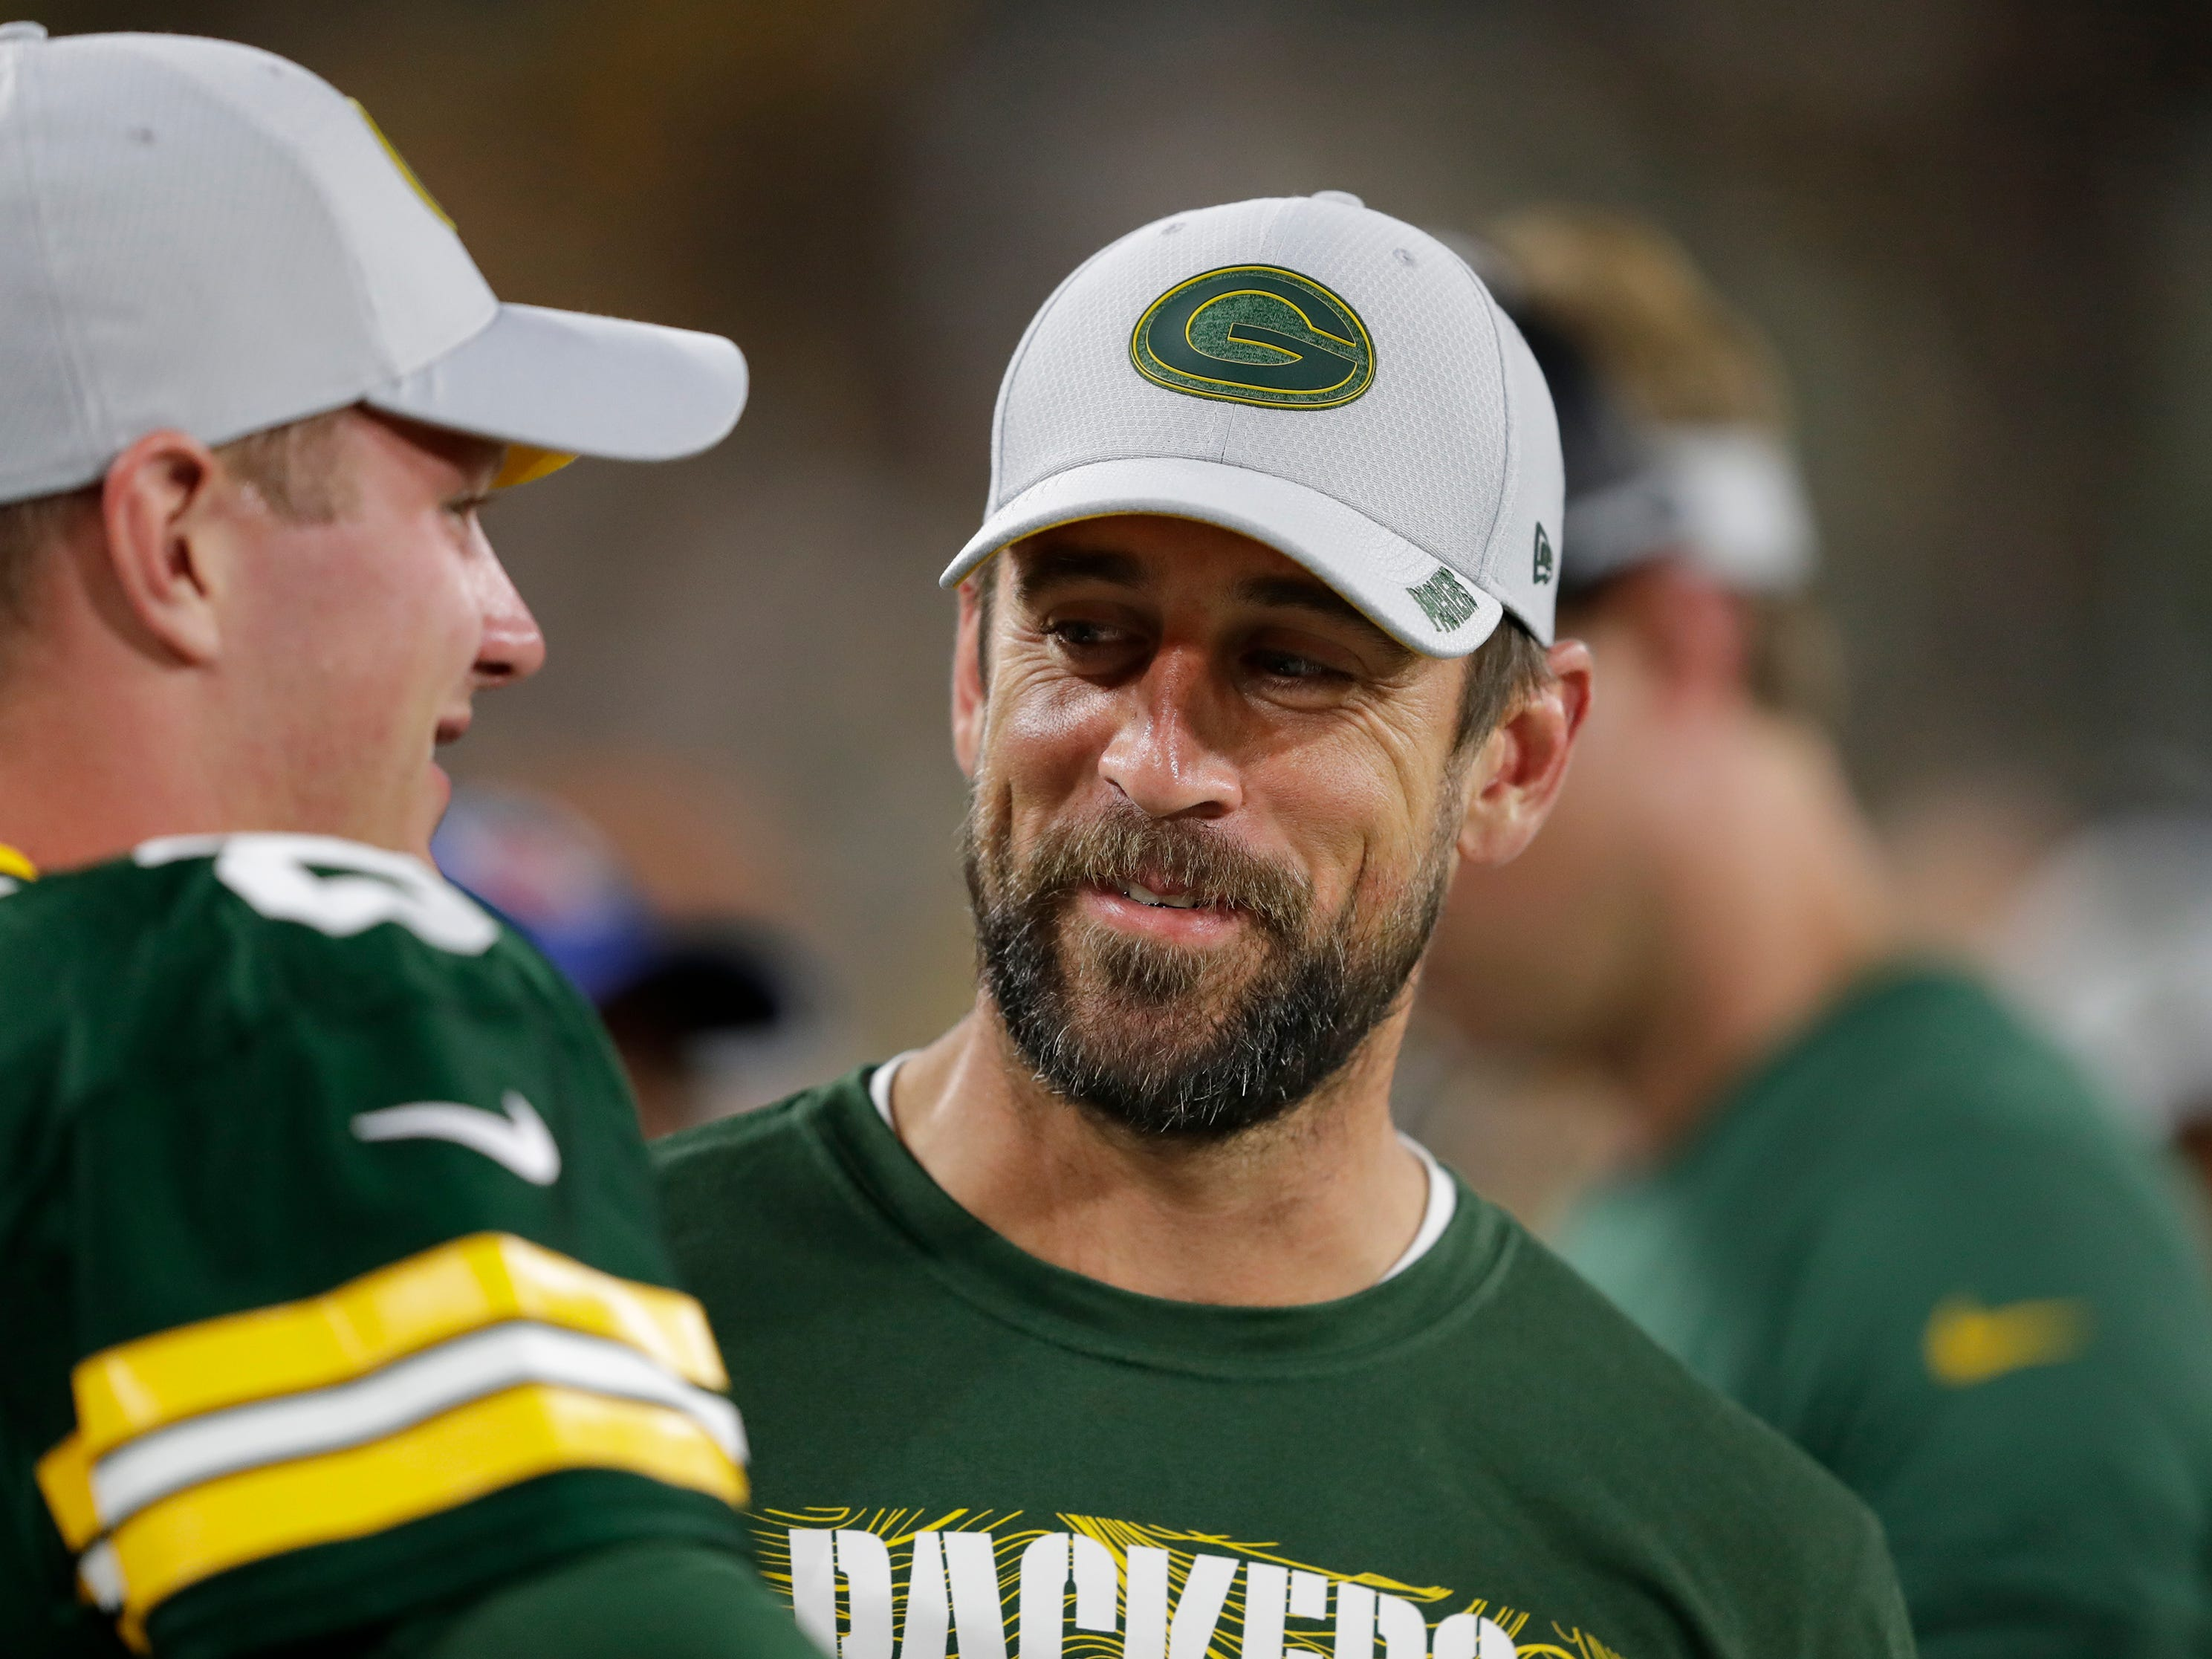 Green Bay Packers quarterback Aaron Rodgers (12) and Tim Boyle (8) share a laugh on the sidelines against the Tennessee Titans during their football game Thursday, August 9, 2018, at Lambeau Field in Green Bay, Wis.